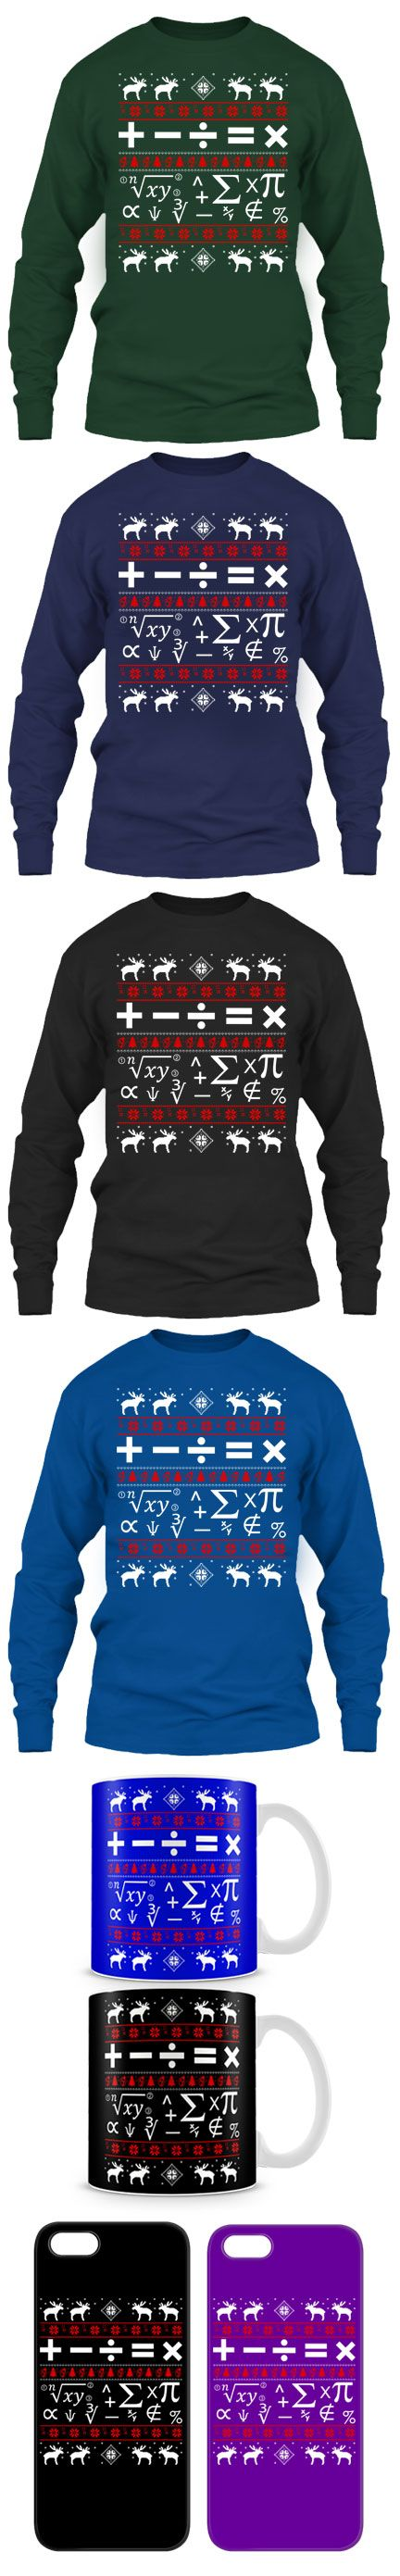 Math Ugly Christmas Sweater! Click The Image To Buy It Now or Tag Someone You Want To Buy This For.